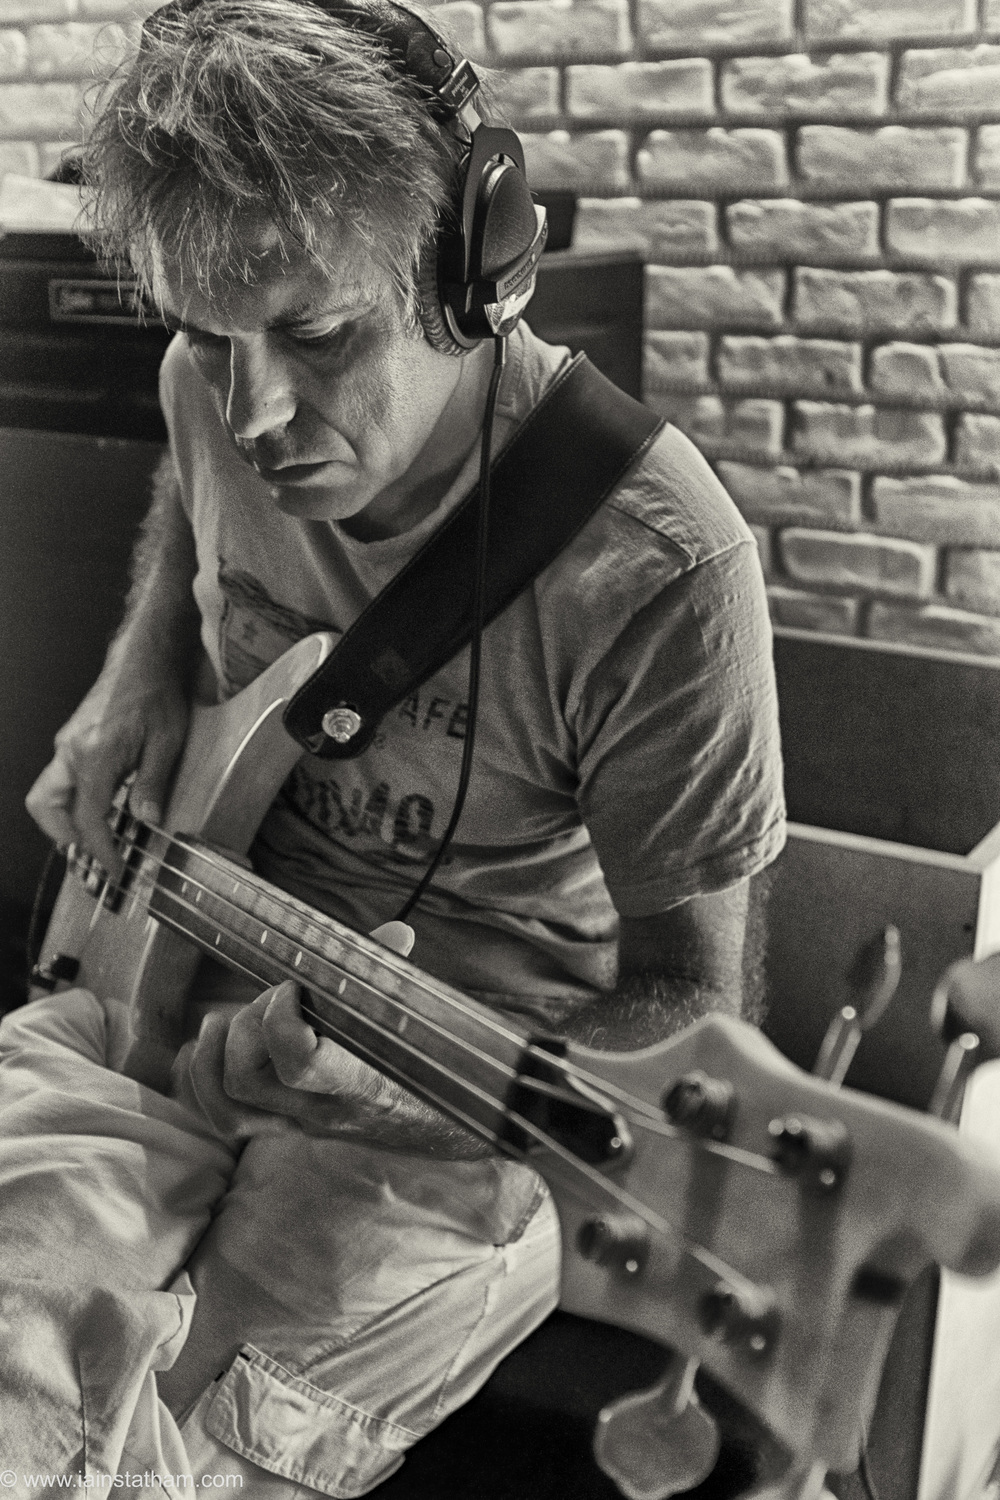 fr - music - mahognay - studio - bw - august 15-19.jpg